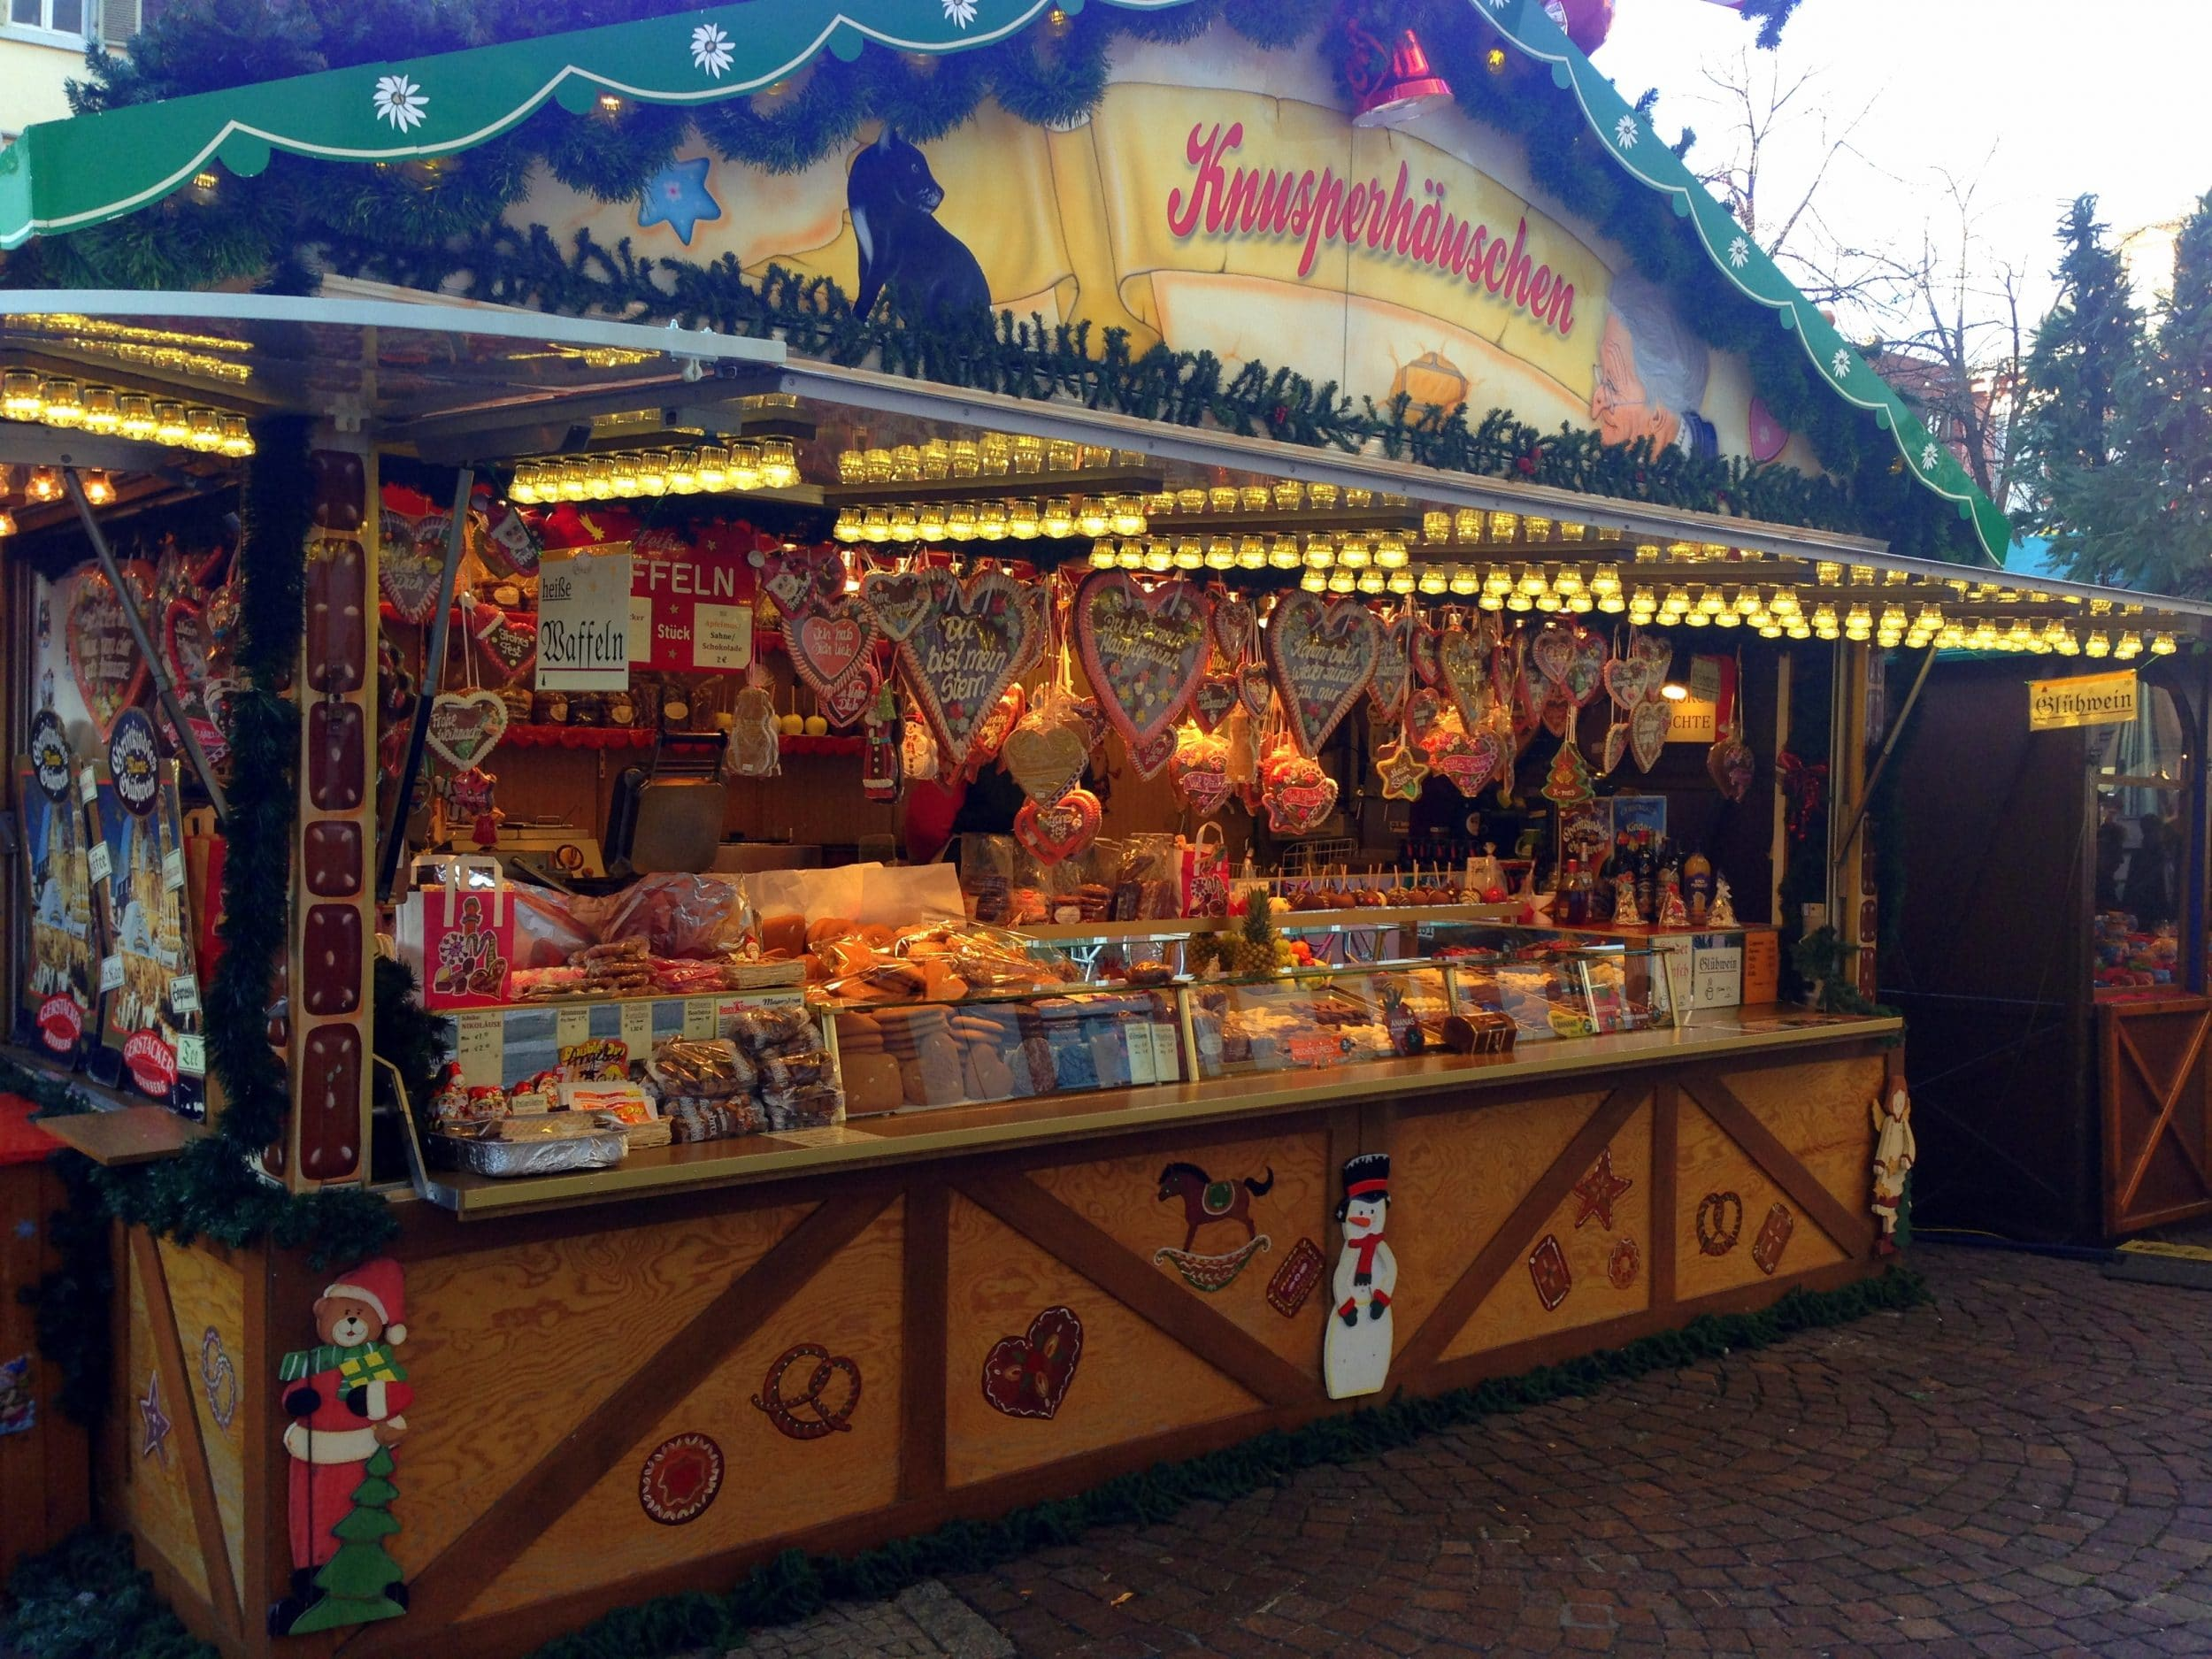 Heidelberg Christmas Market via Wayfaring With Wagner